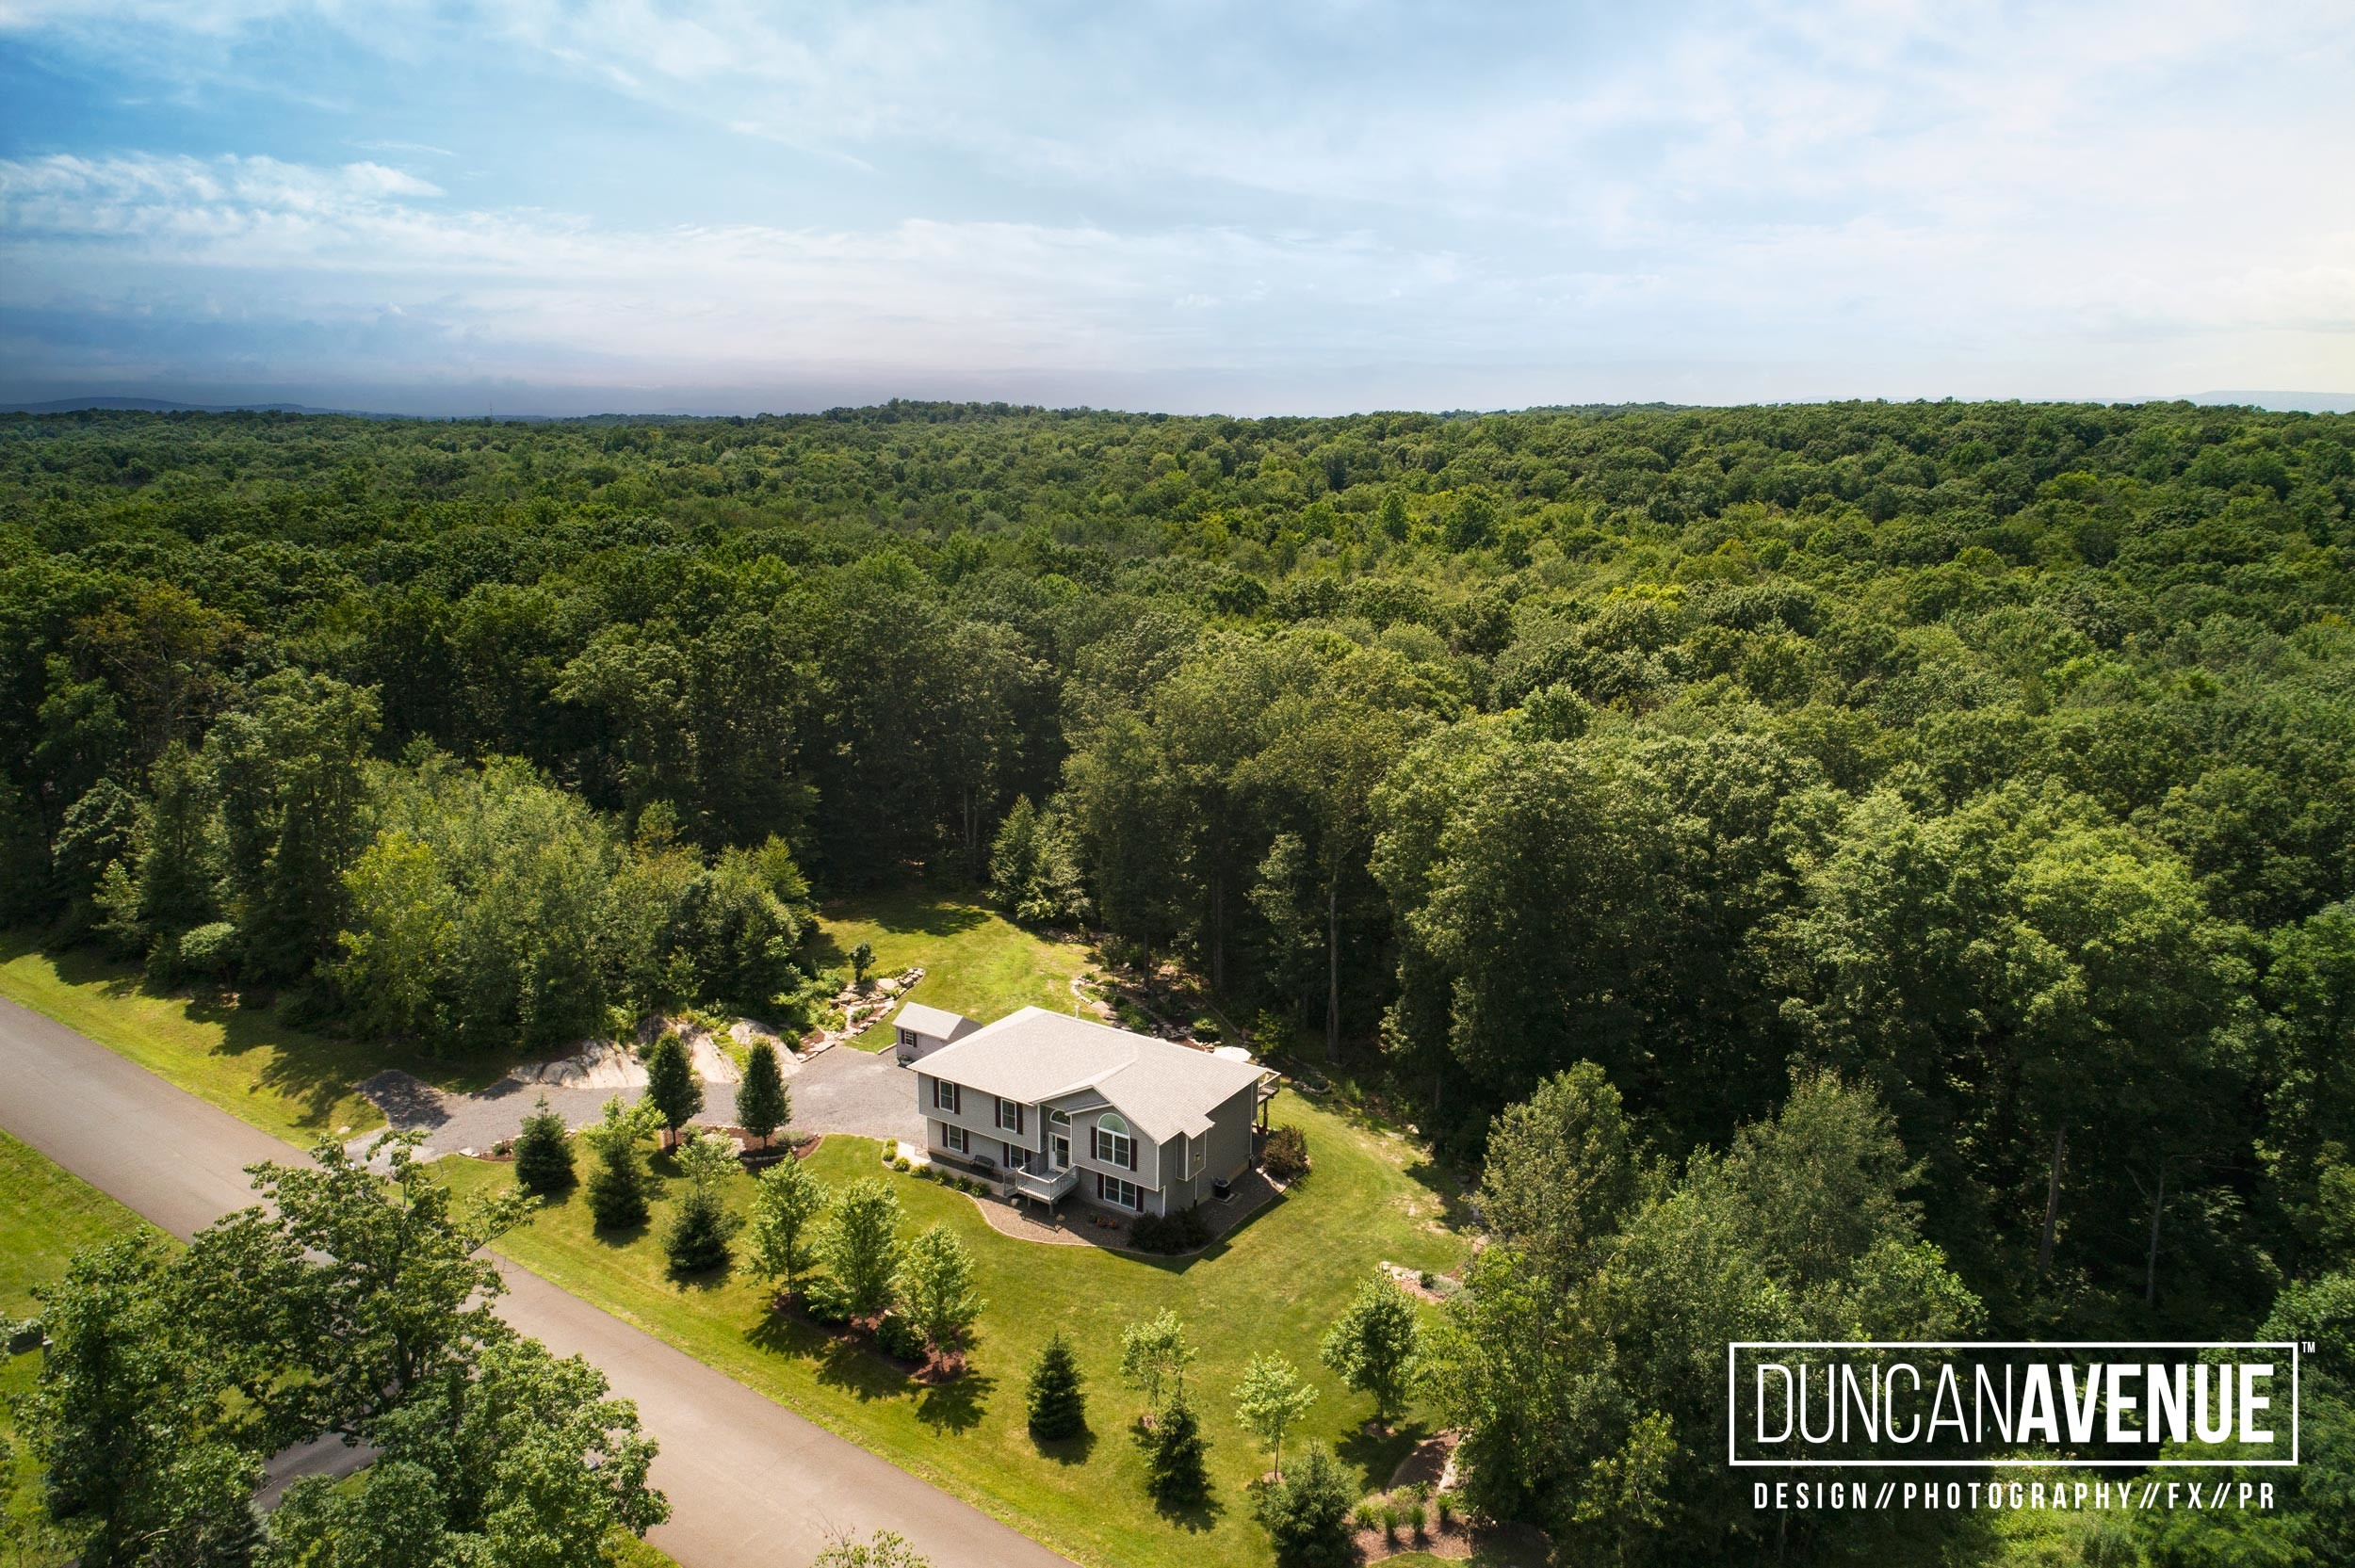 Highland, NY - Real Estate Photography Project for Weichert Realty by Duncan Avenue photography Studio / Maxwell Alexander